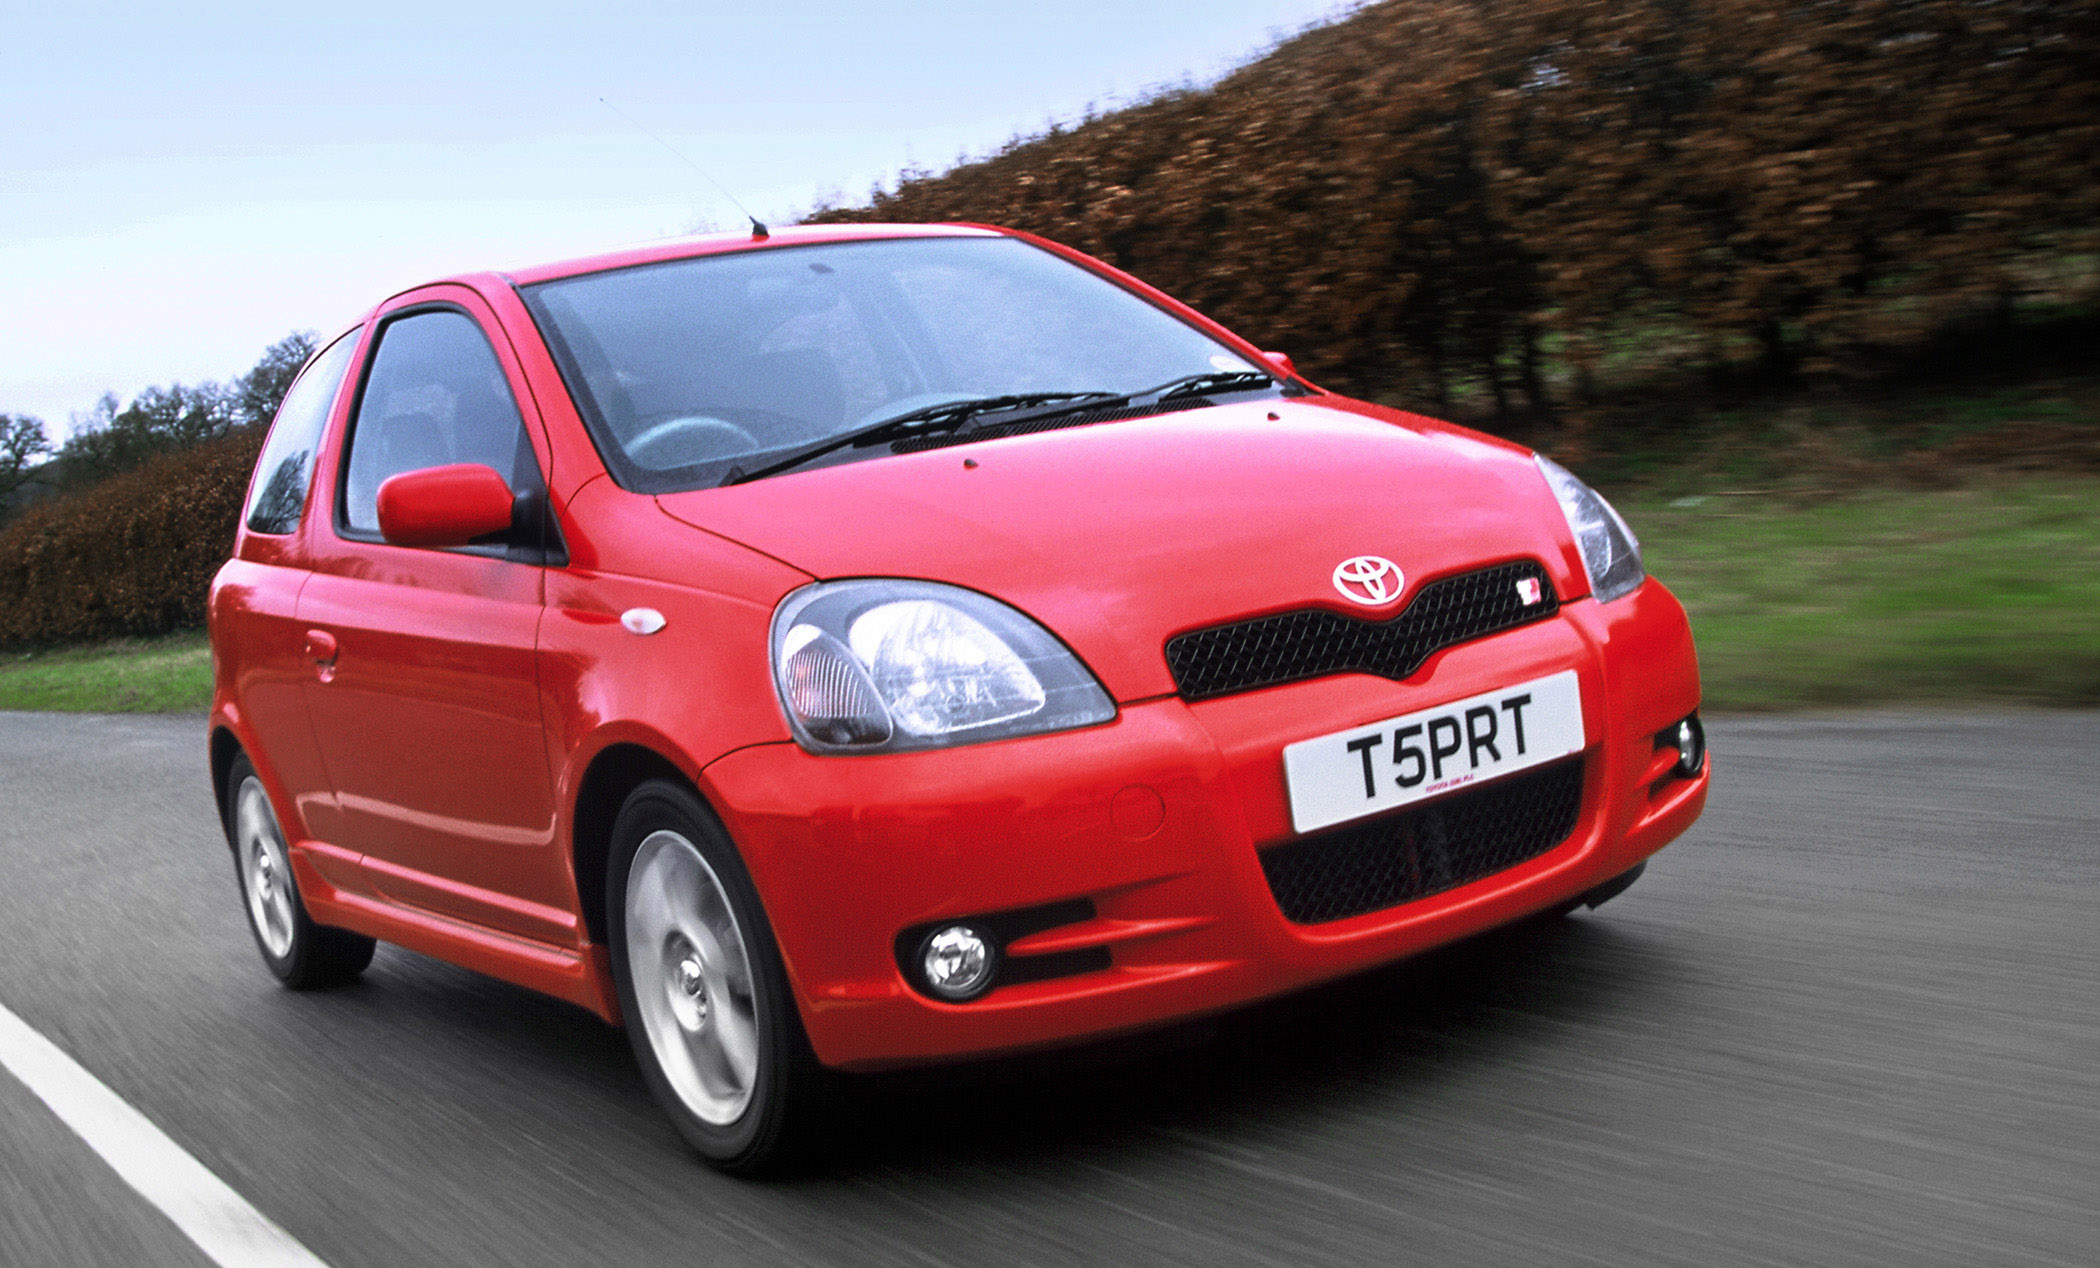 2001 Toyota Yaris T Sport Picture 76915